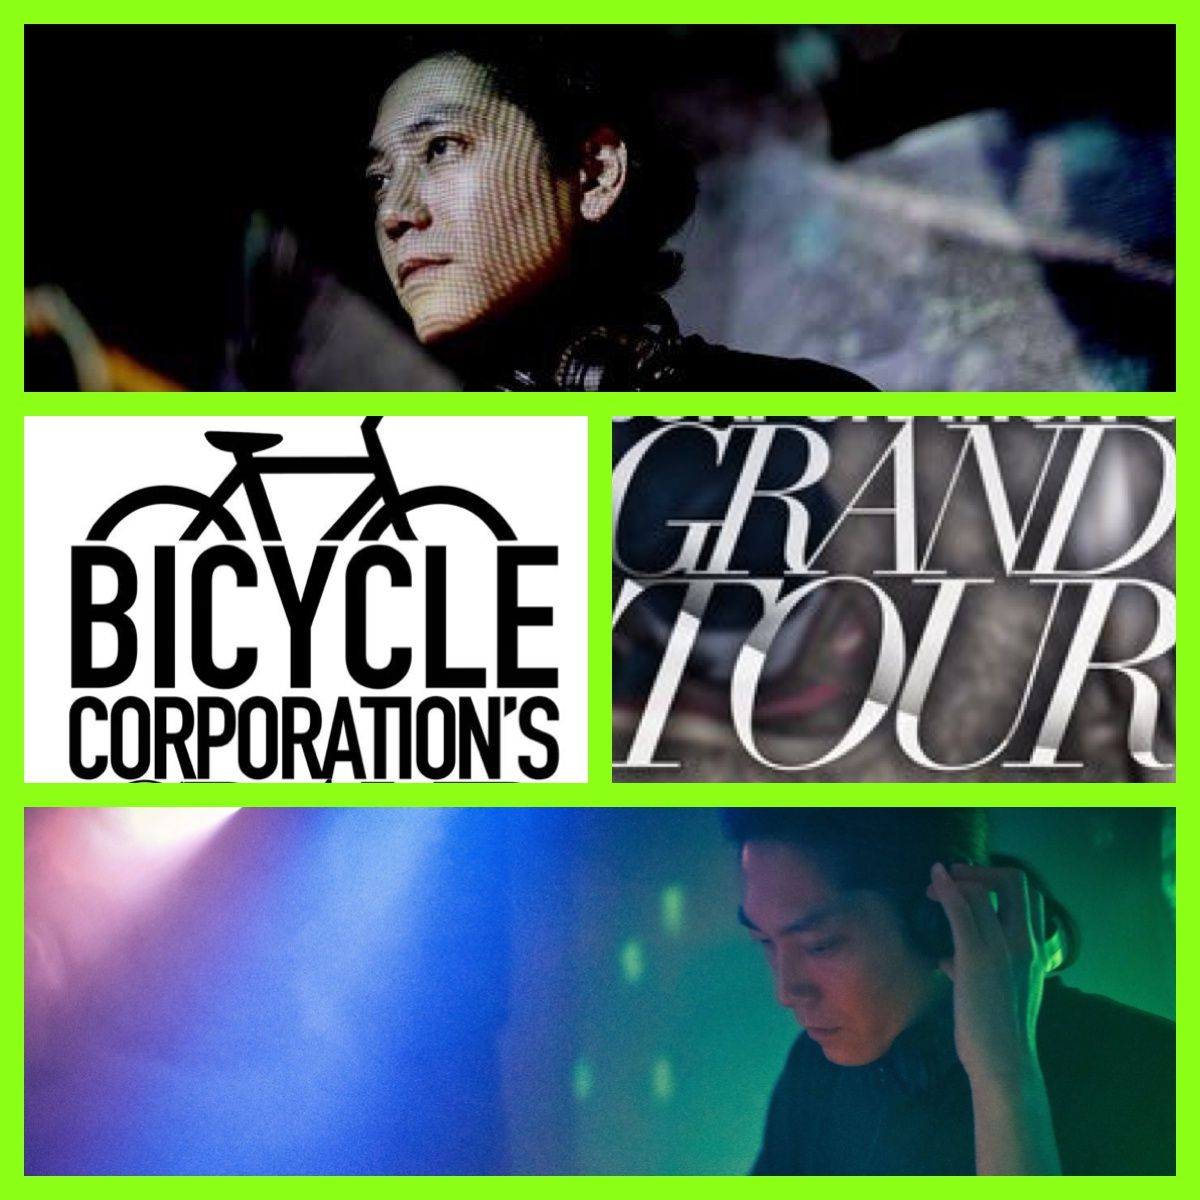 Coming up this Saturday - Grand Tour Radio Show on BeatLounge Radio - Los Angeles and hosted by the Bicycle Corporation Special guest : satoshi fumi ( Moodmusic Records - Get Physical Music - Outerspace ) https://soundcloud.com/satoshi-fumi